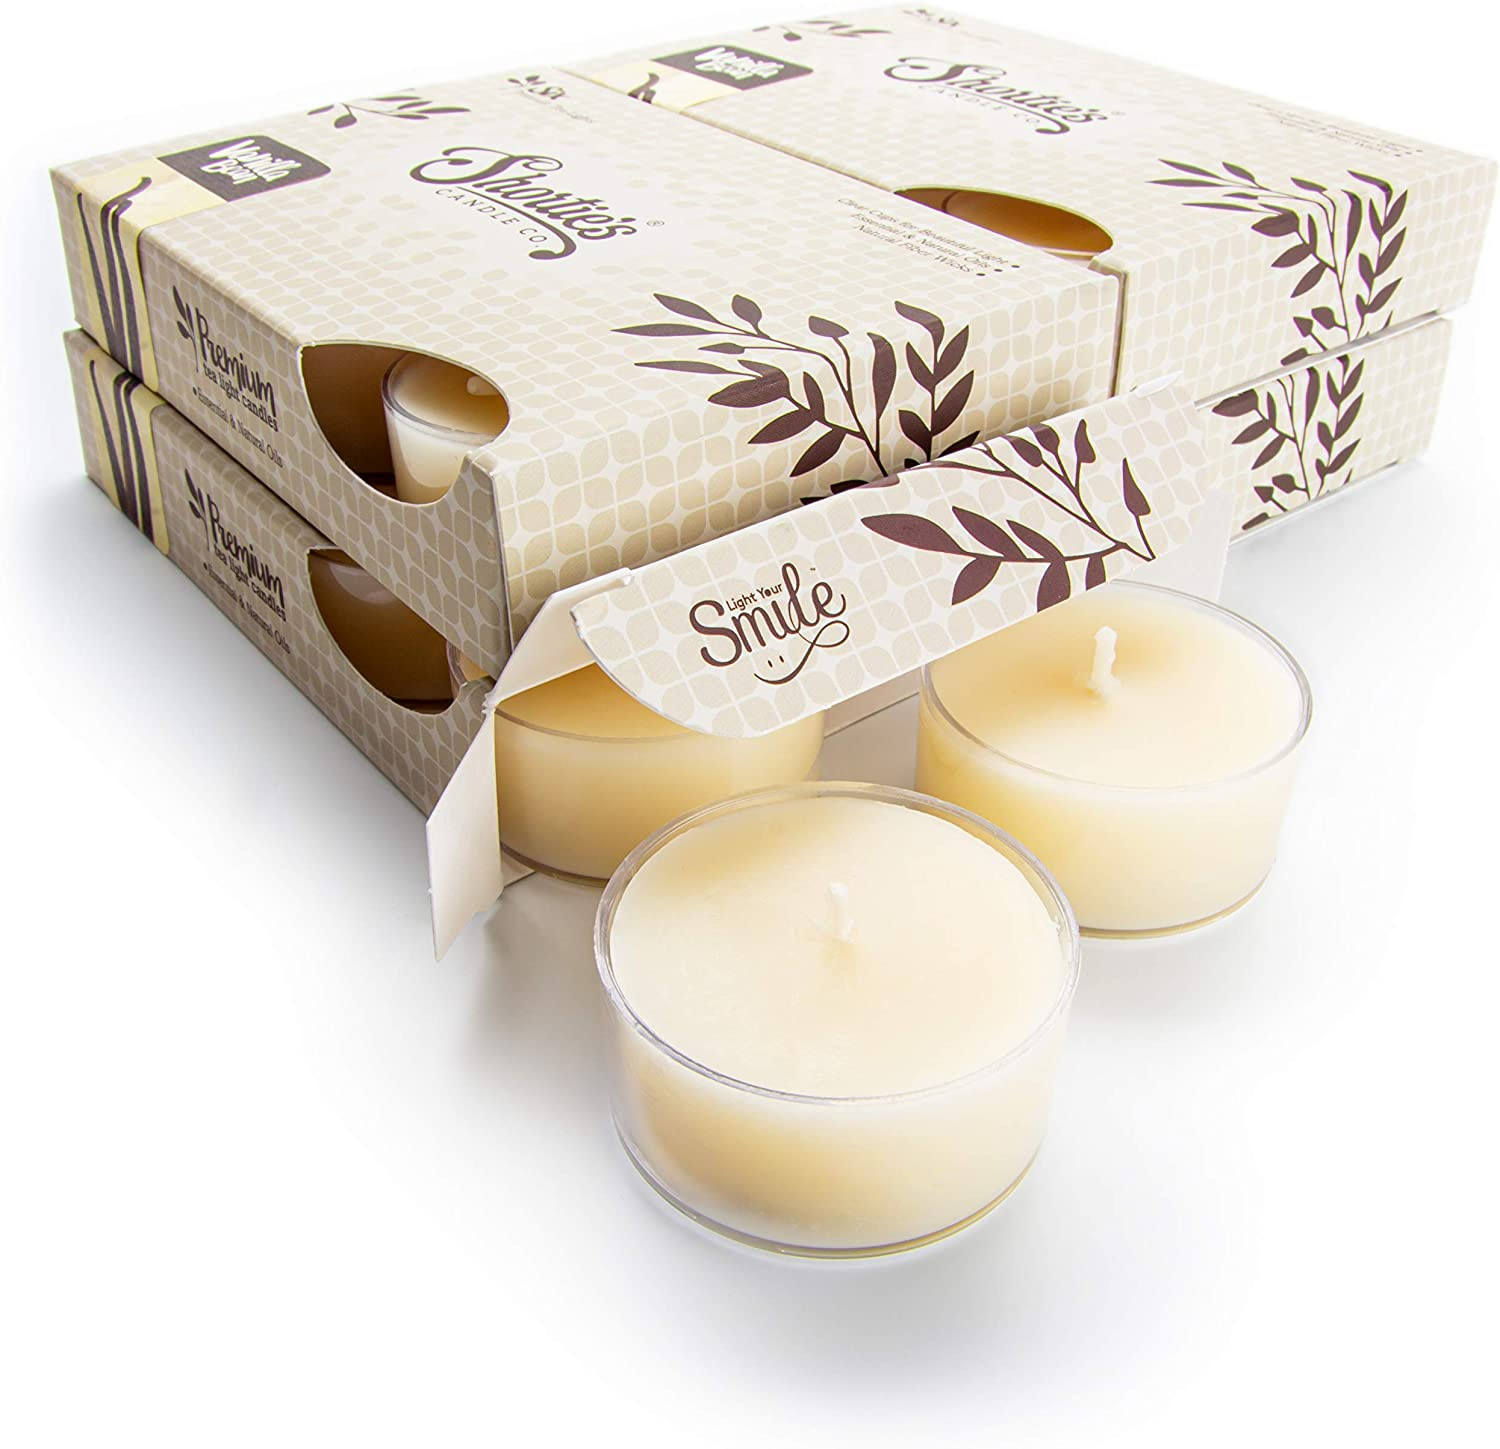 Vanilla Bean Tealight Sale special price Candles Bulk Beige 24 Pack Ranking TOP15 Scented Highly